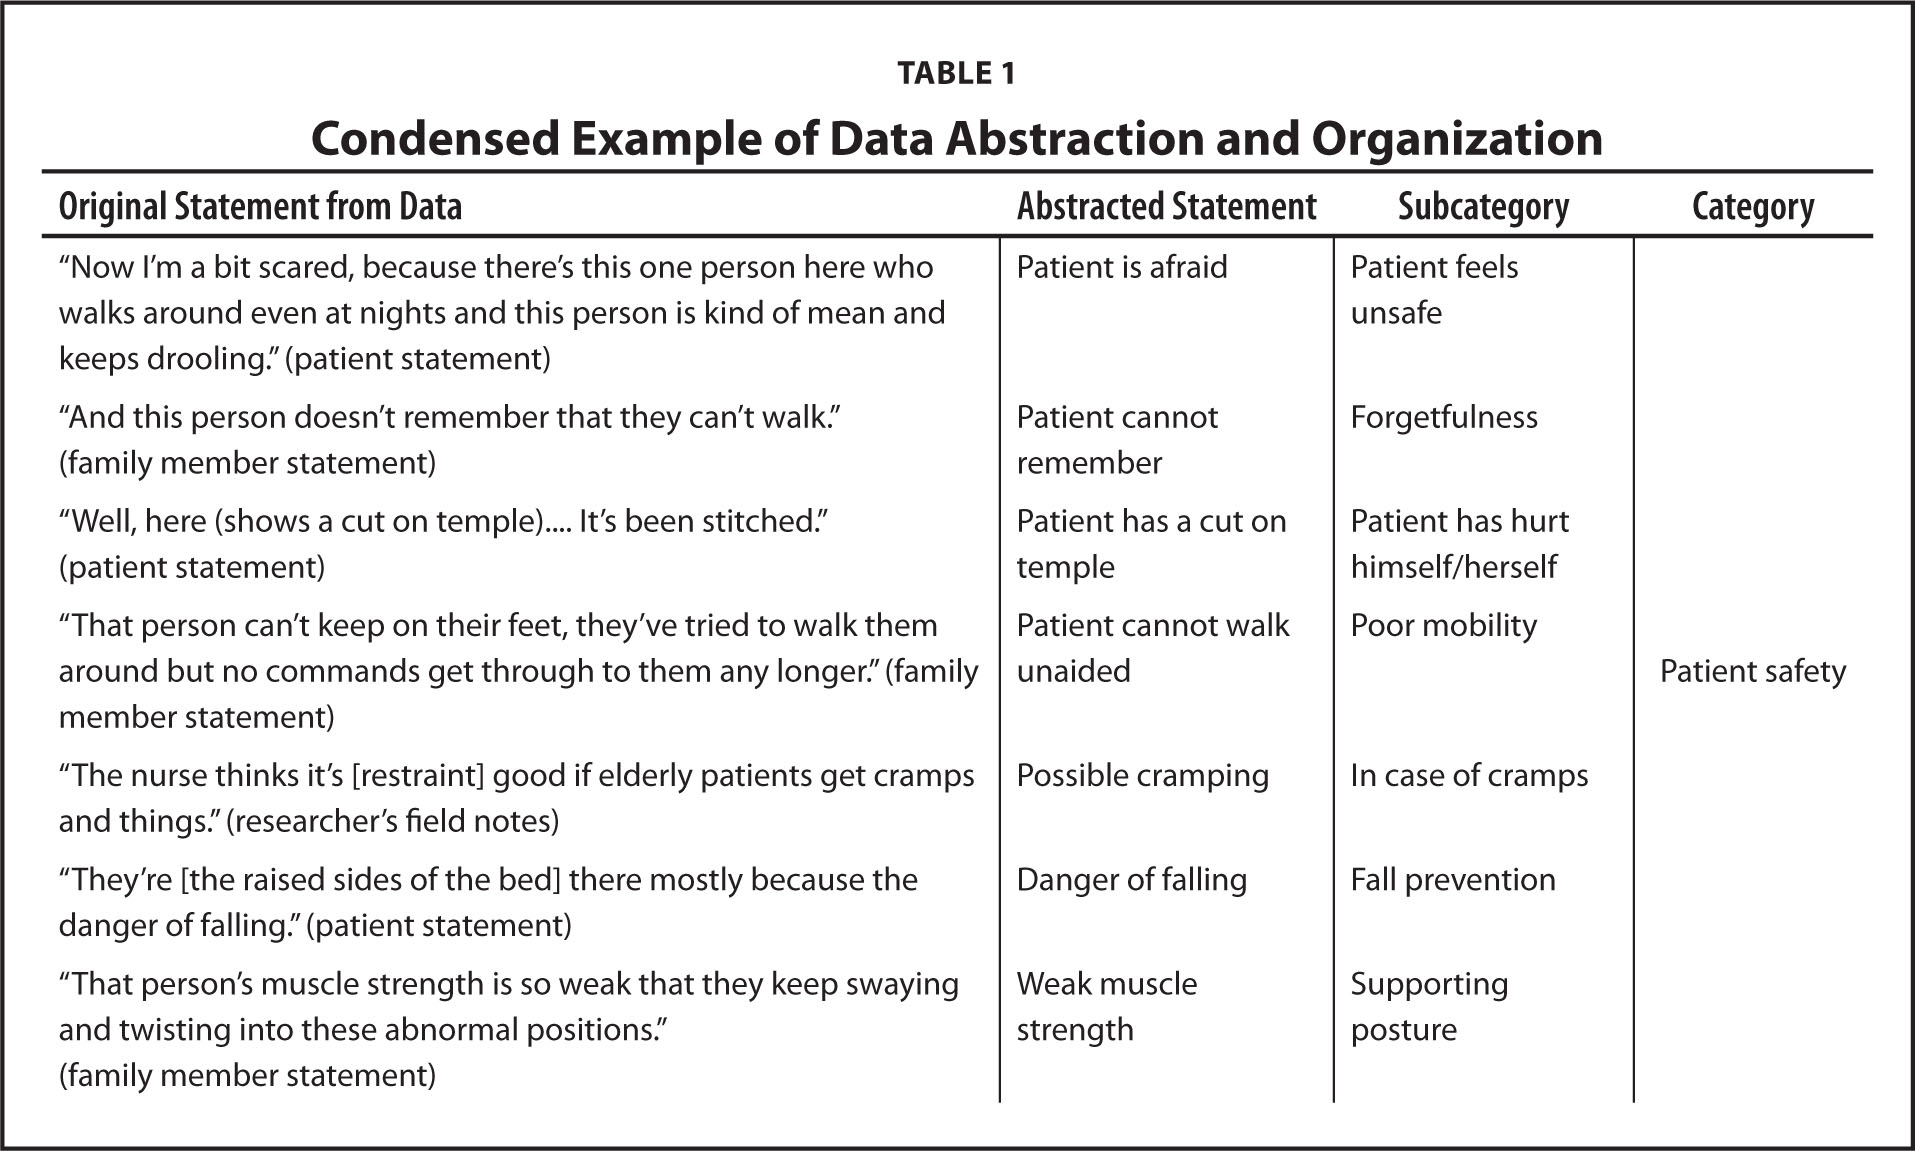 Condensed Example of Data Abstraction and Organization